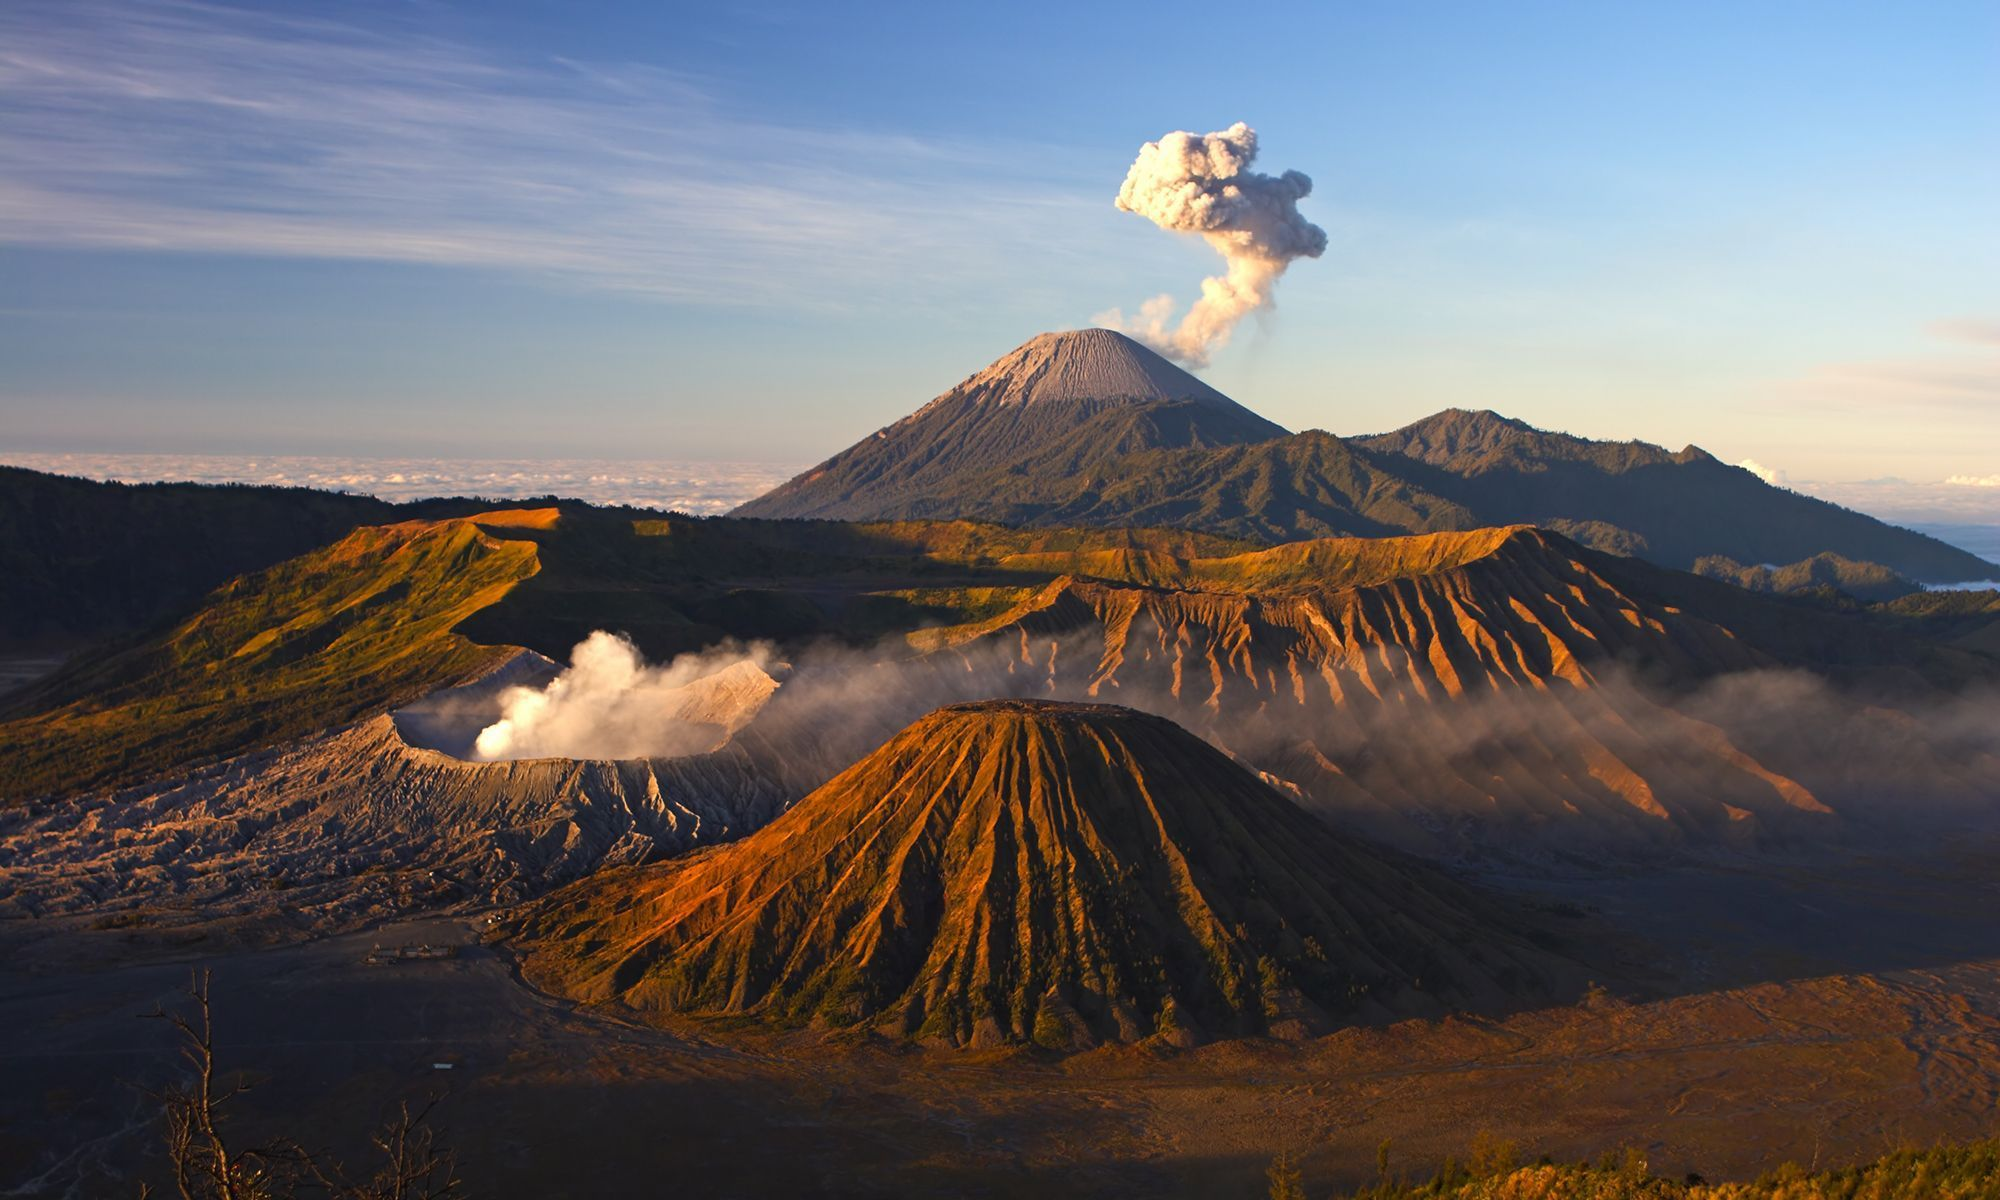 Bromo Tengger Semeru National Park, Java; image credit: NationalGeographic/Manamana